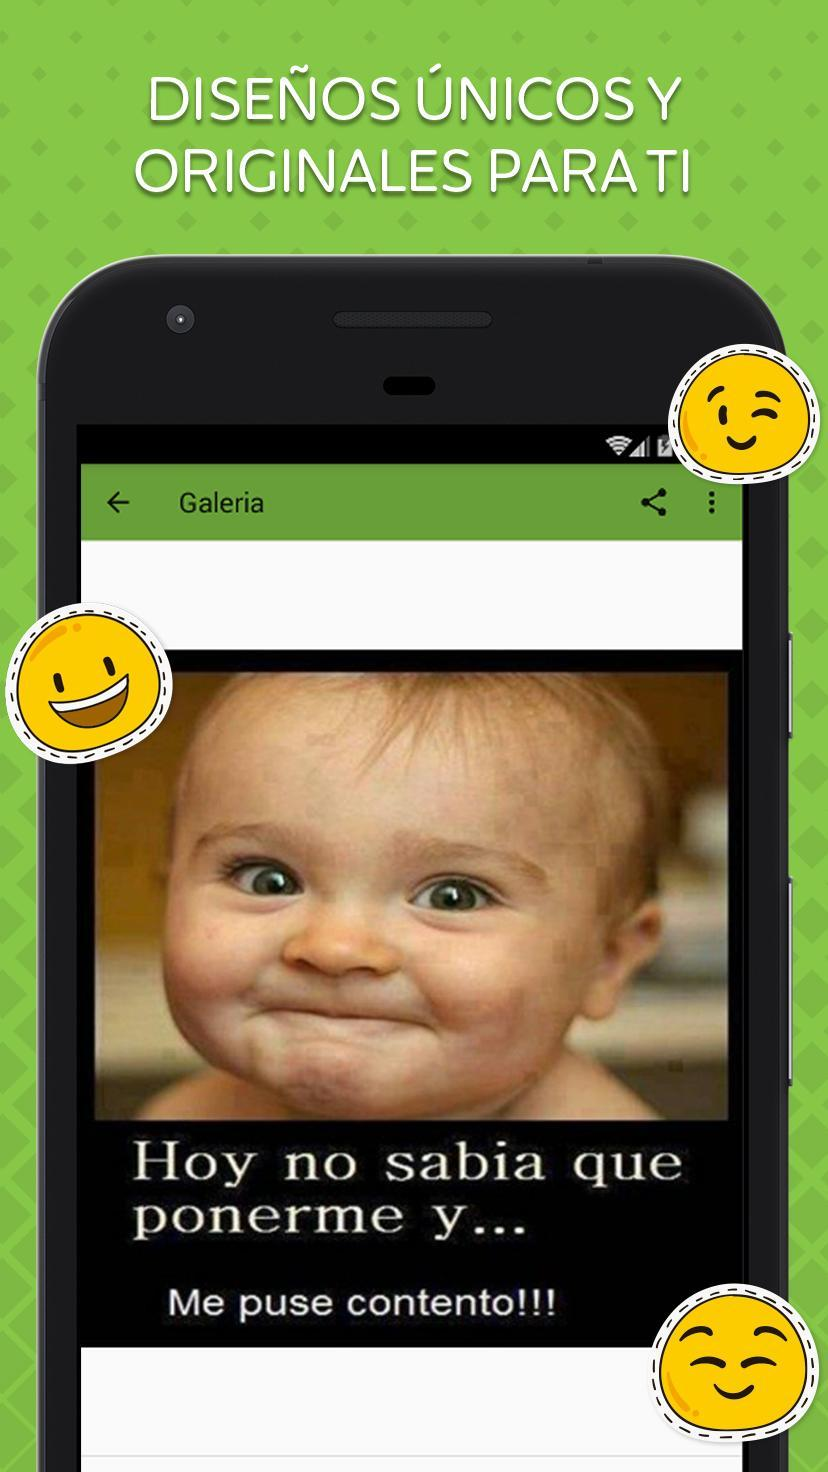 Imagenes De Risa Con Frases For Android Apk Download